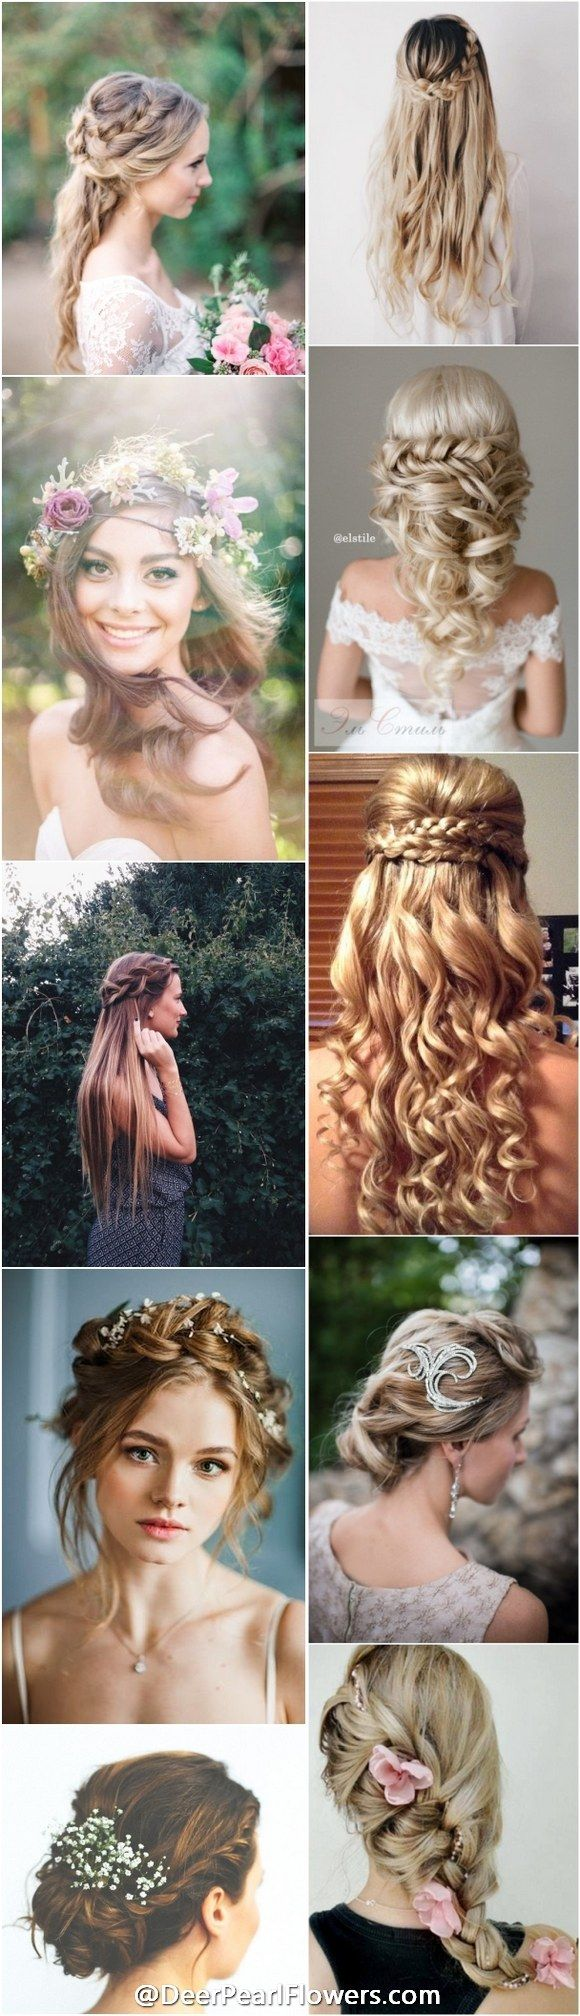 The best images about hairstyles on pinterest chignons updo